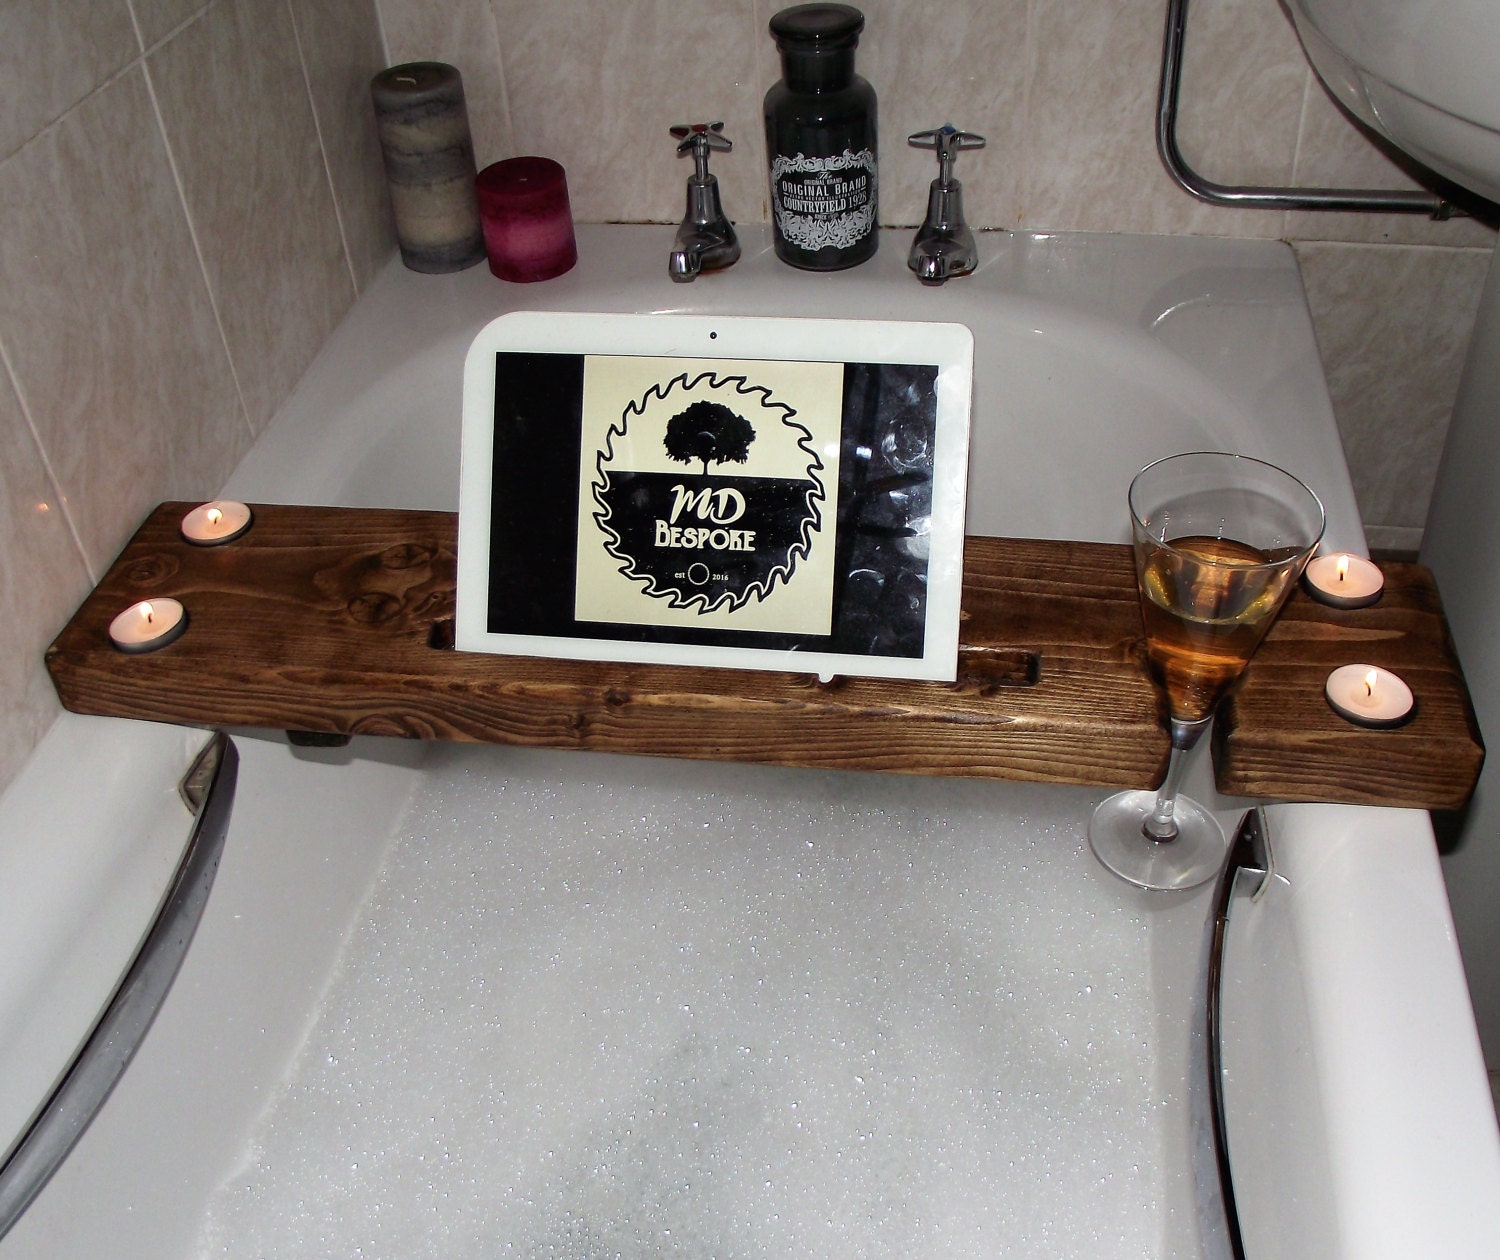 Bath board Bath Caddy Wooden Bath Tray Wine glass holder